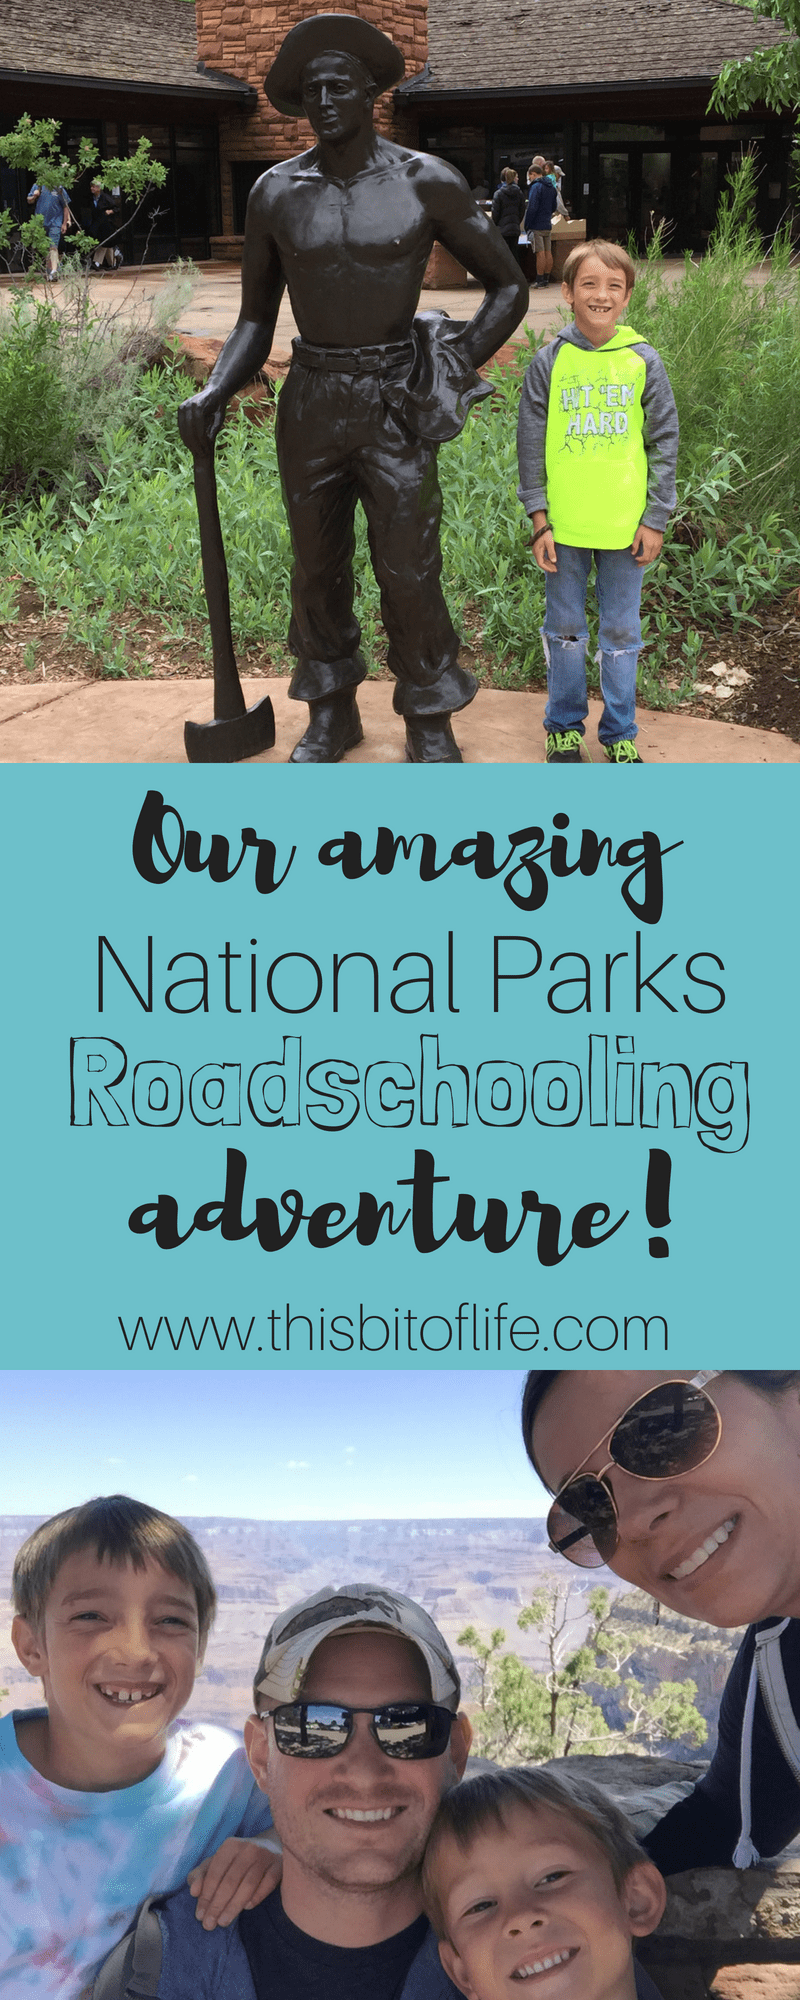 Our amazing National parks Roadschooling adventure! We visited so many amazing places in our beautiful country! #roadschooling #homeschooling #travel